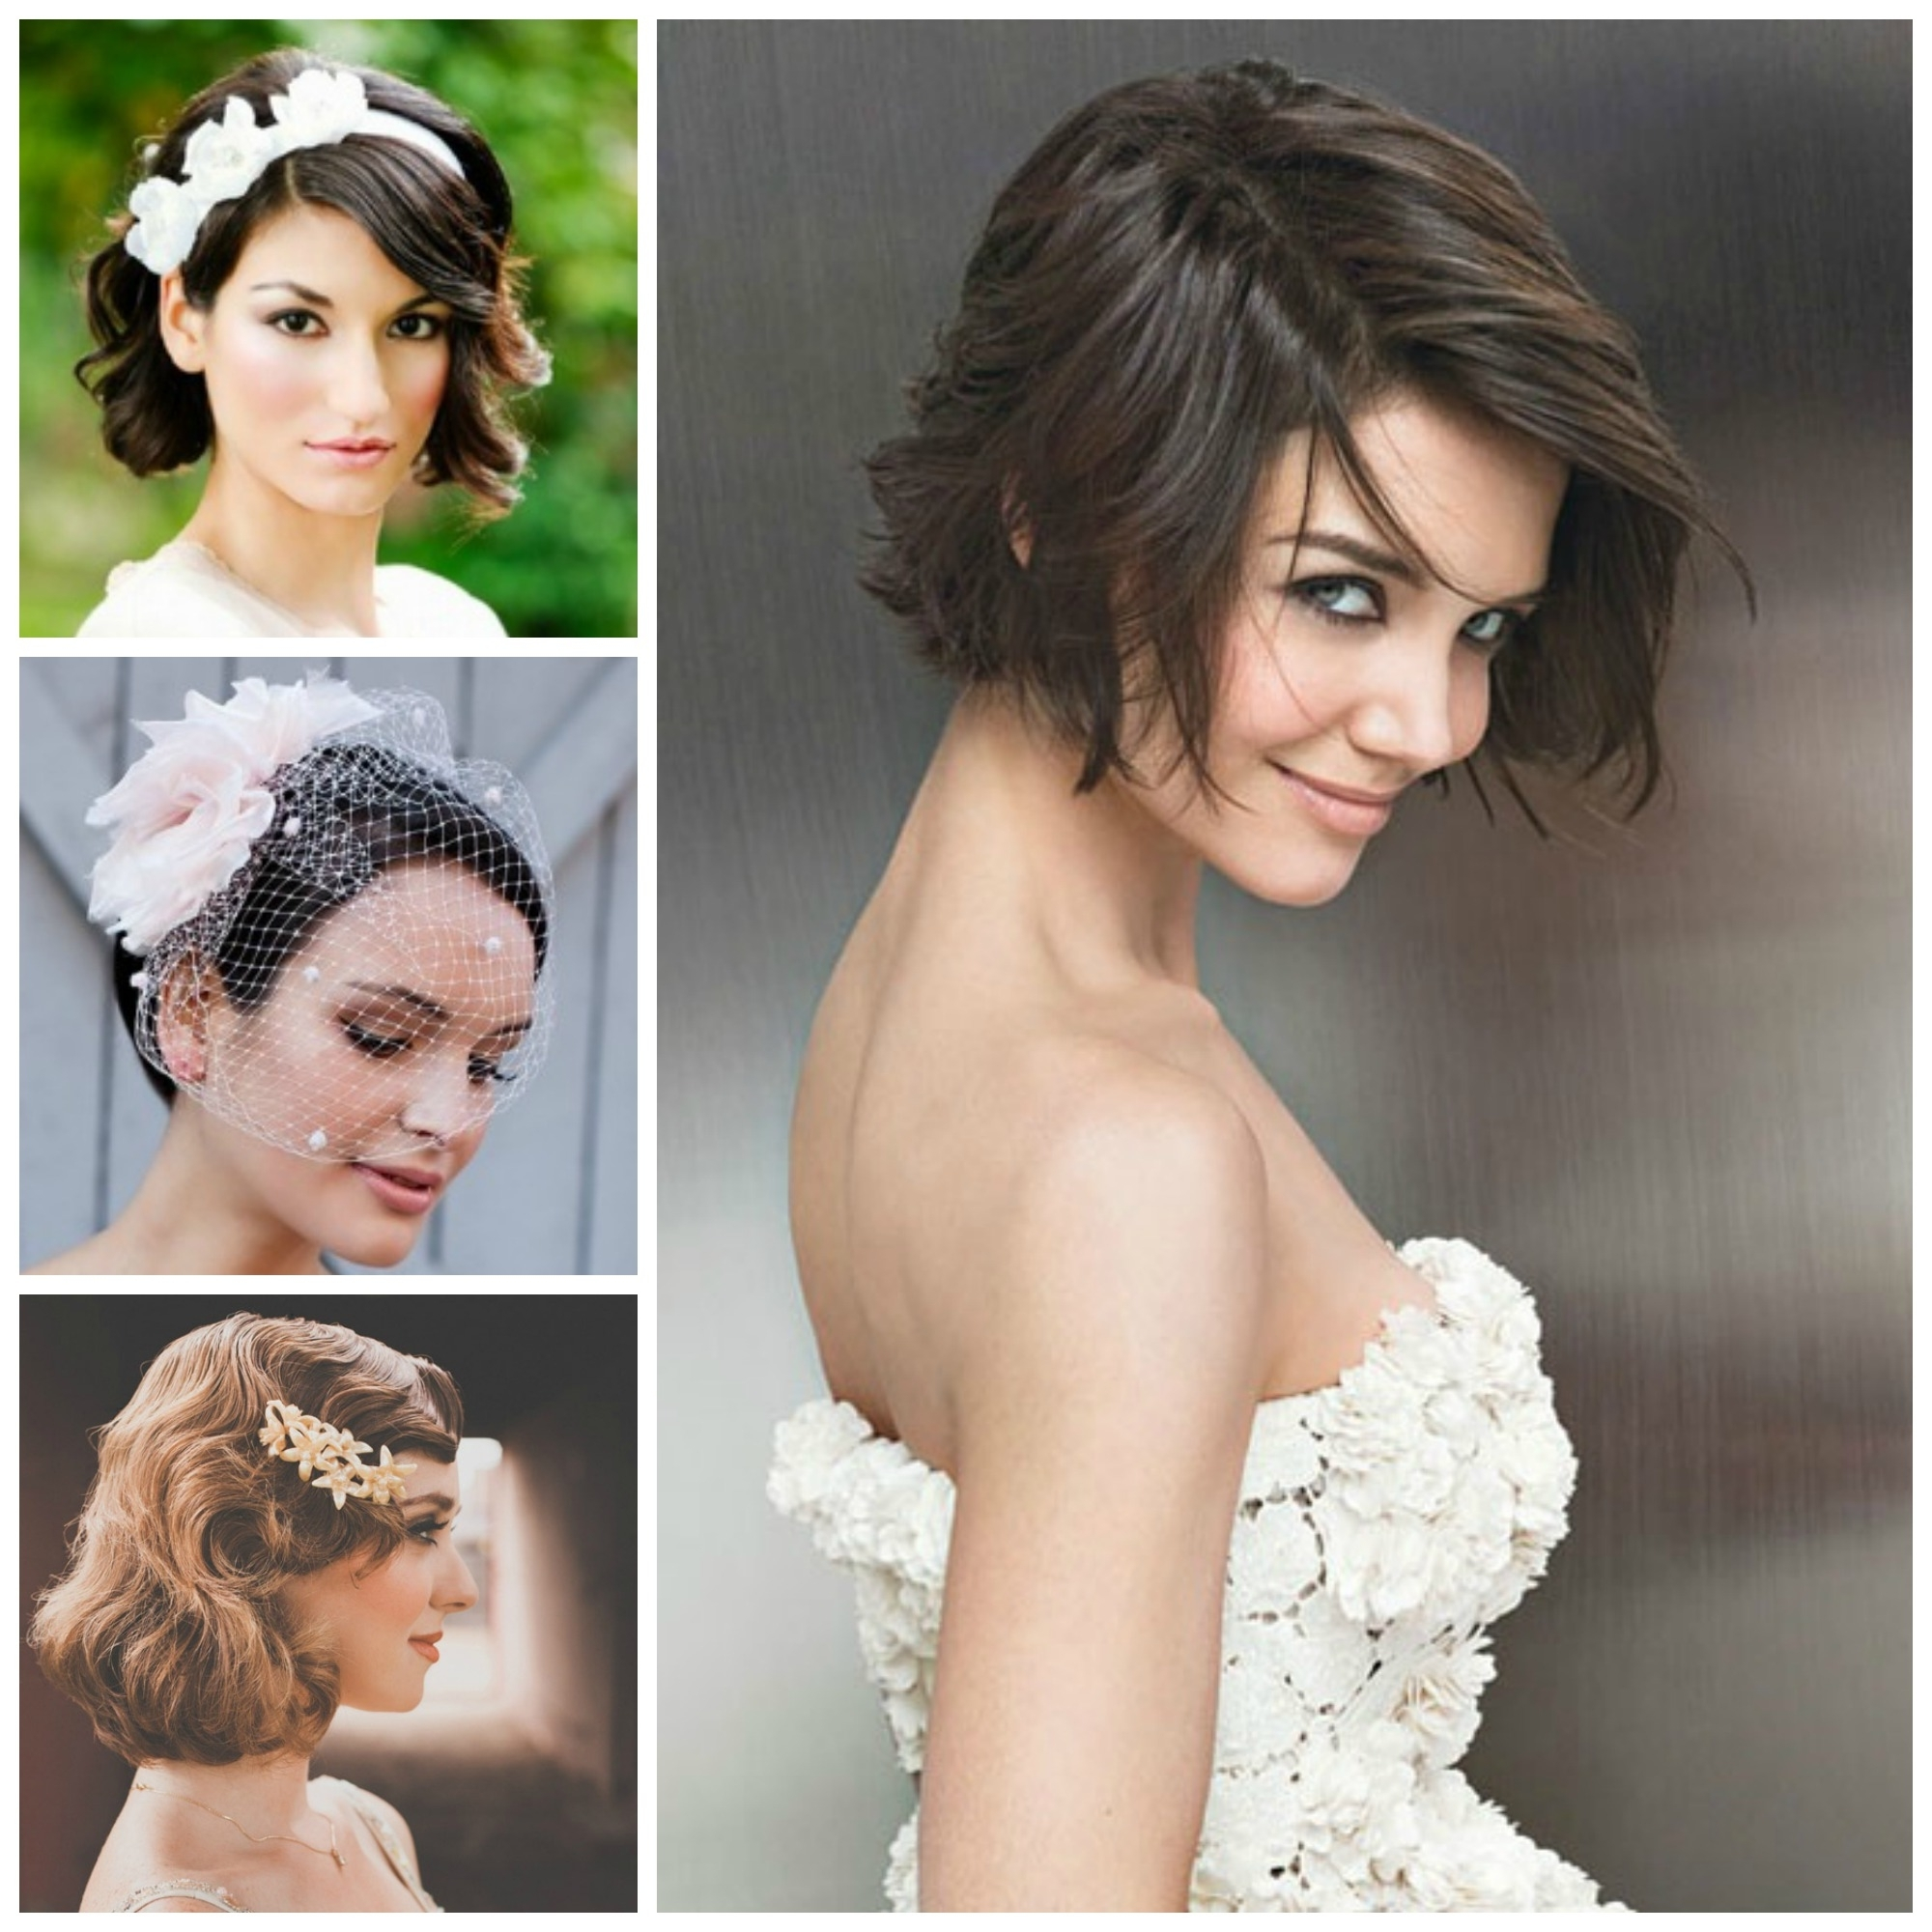 Best Mother Of The Bride Hair Ideas On Look Pretty With Short Bridal Throughout Short Wedding Updo Hairstyles (View 4 of 15)